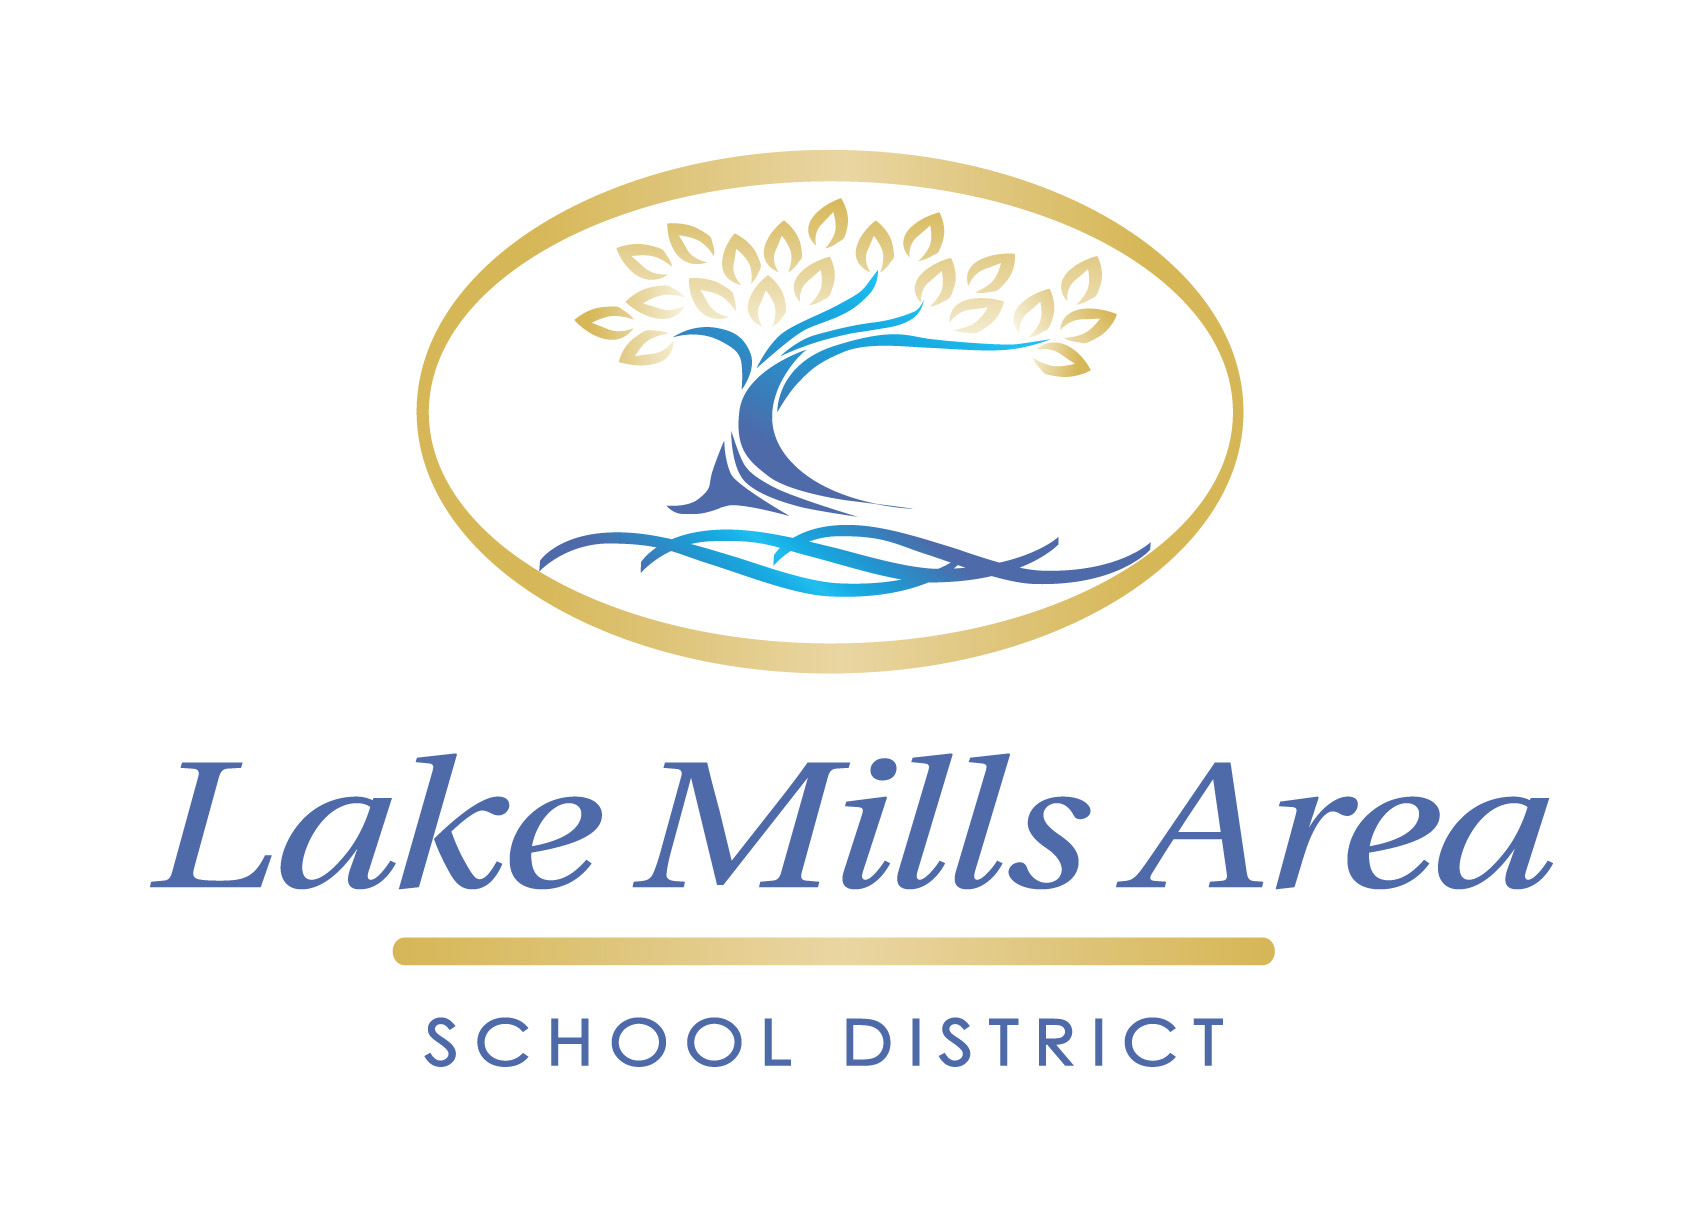 Lake Mills Area School District's Logo